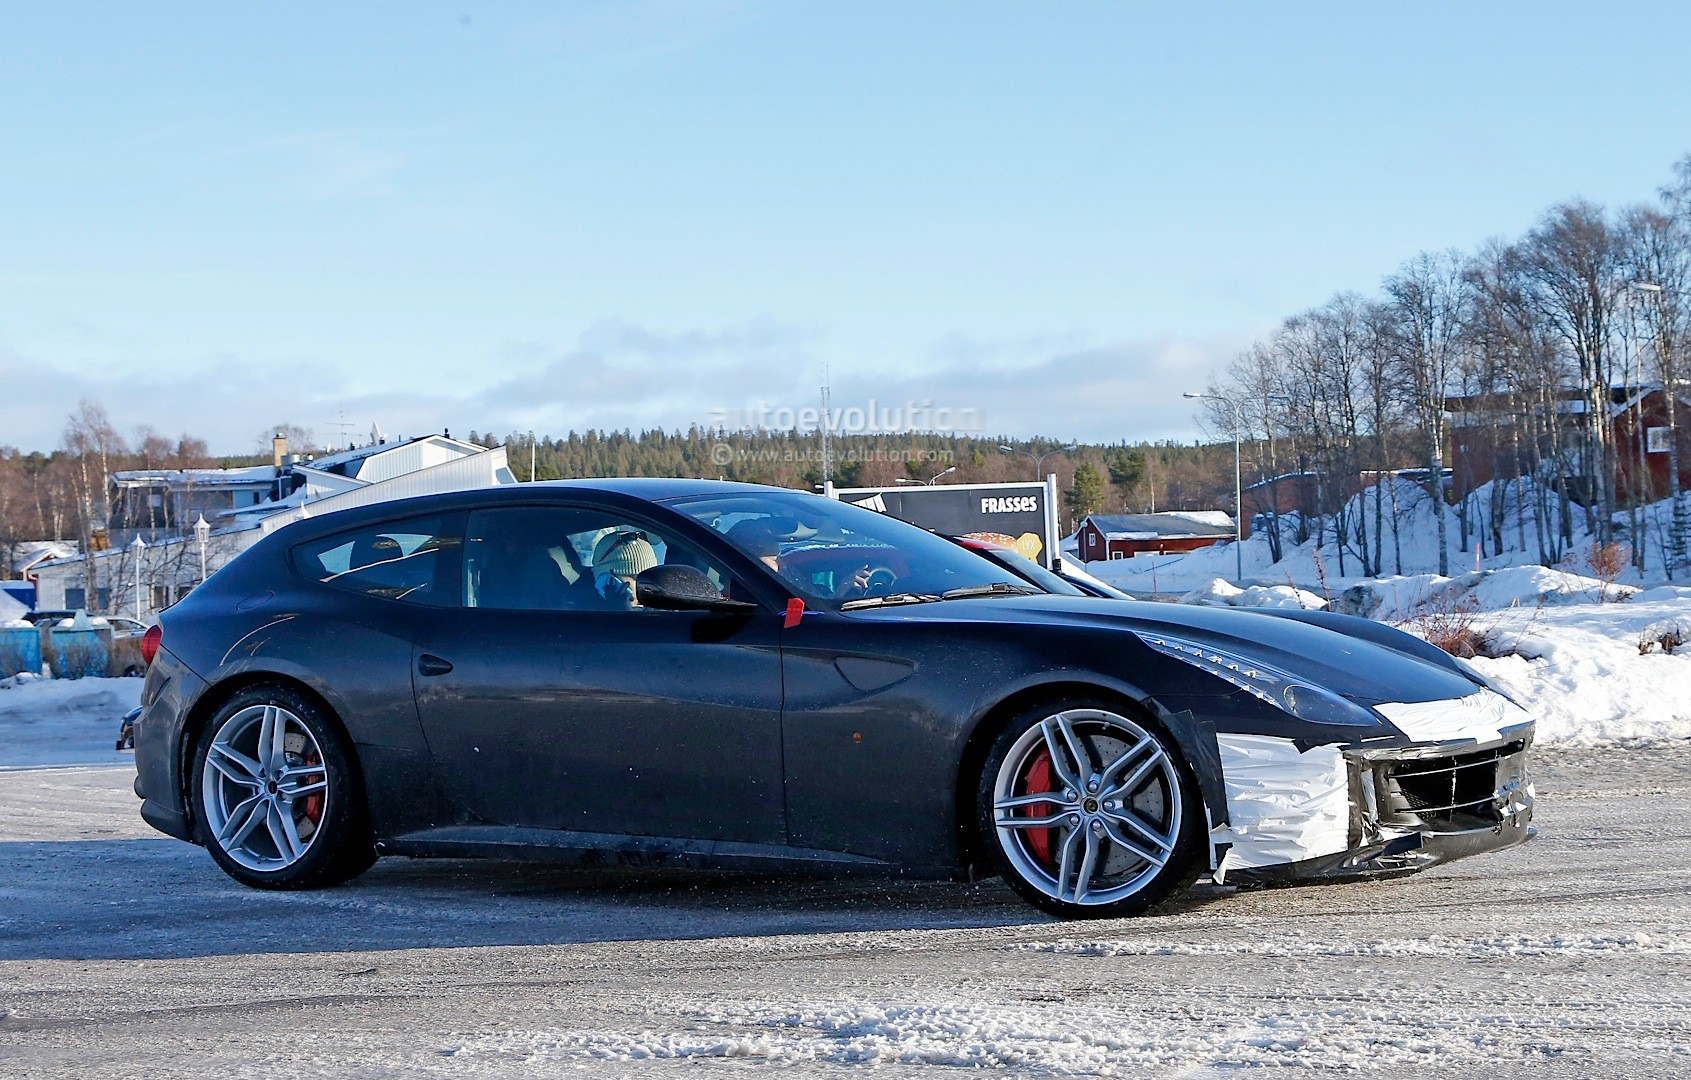 ferrari ff facelift spied in detail will arrive in 2016 with turbo v8 base model autoevolution. Black Bedroom Furniture Sets. Home Design Ideas